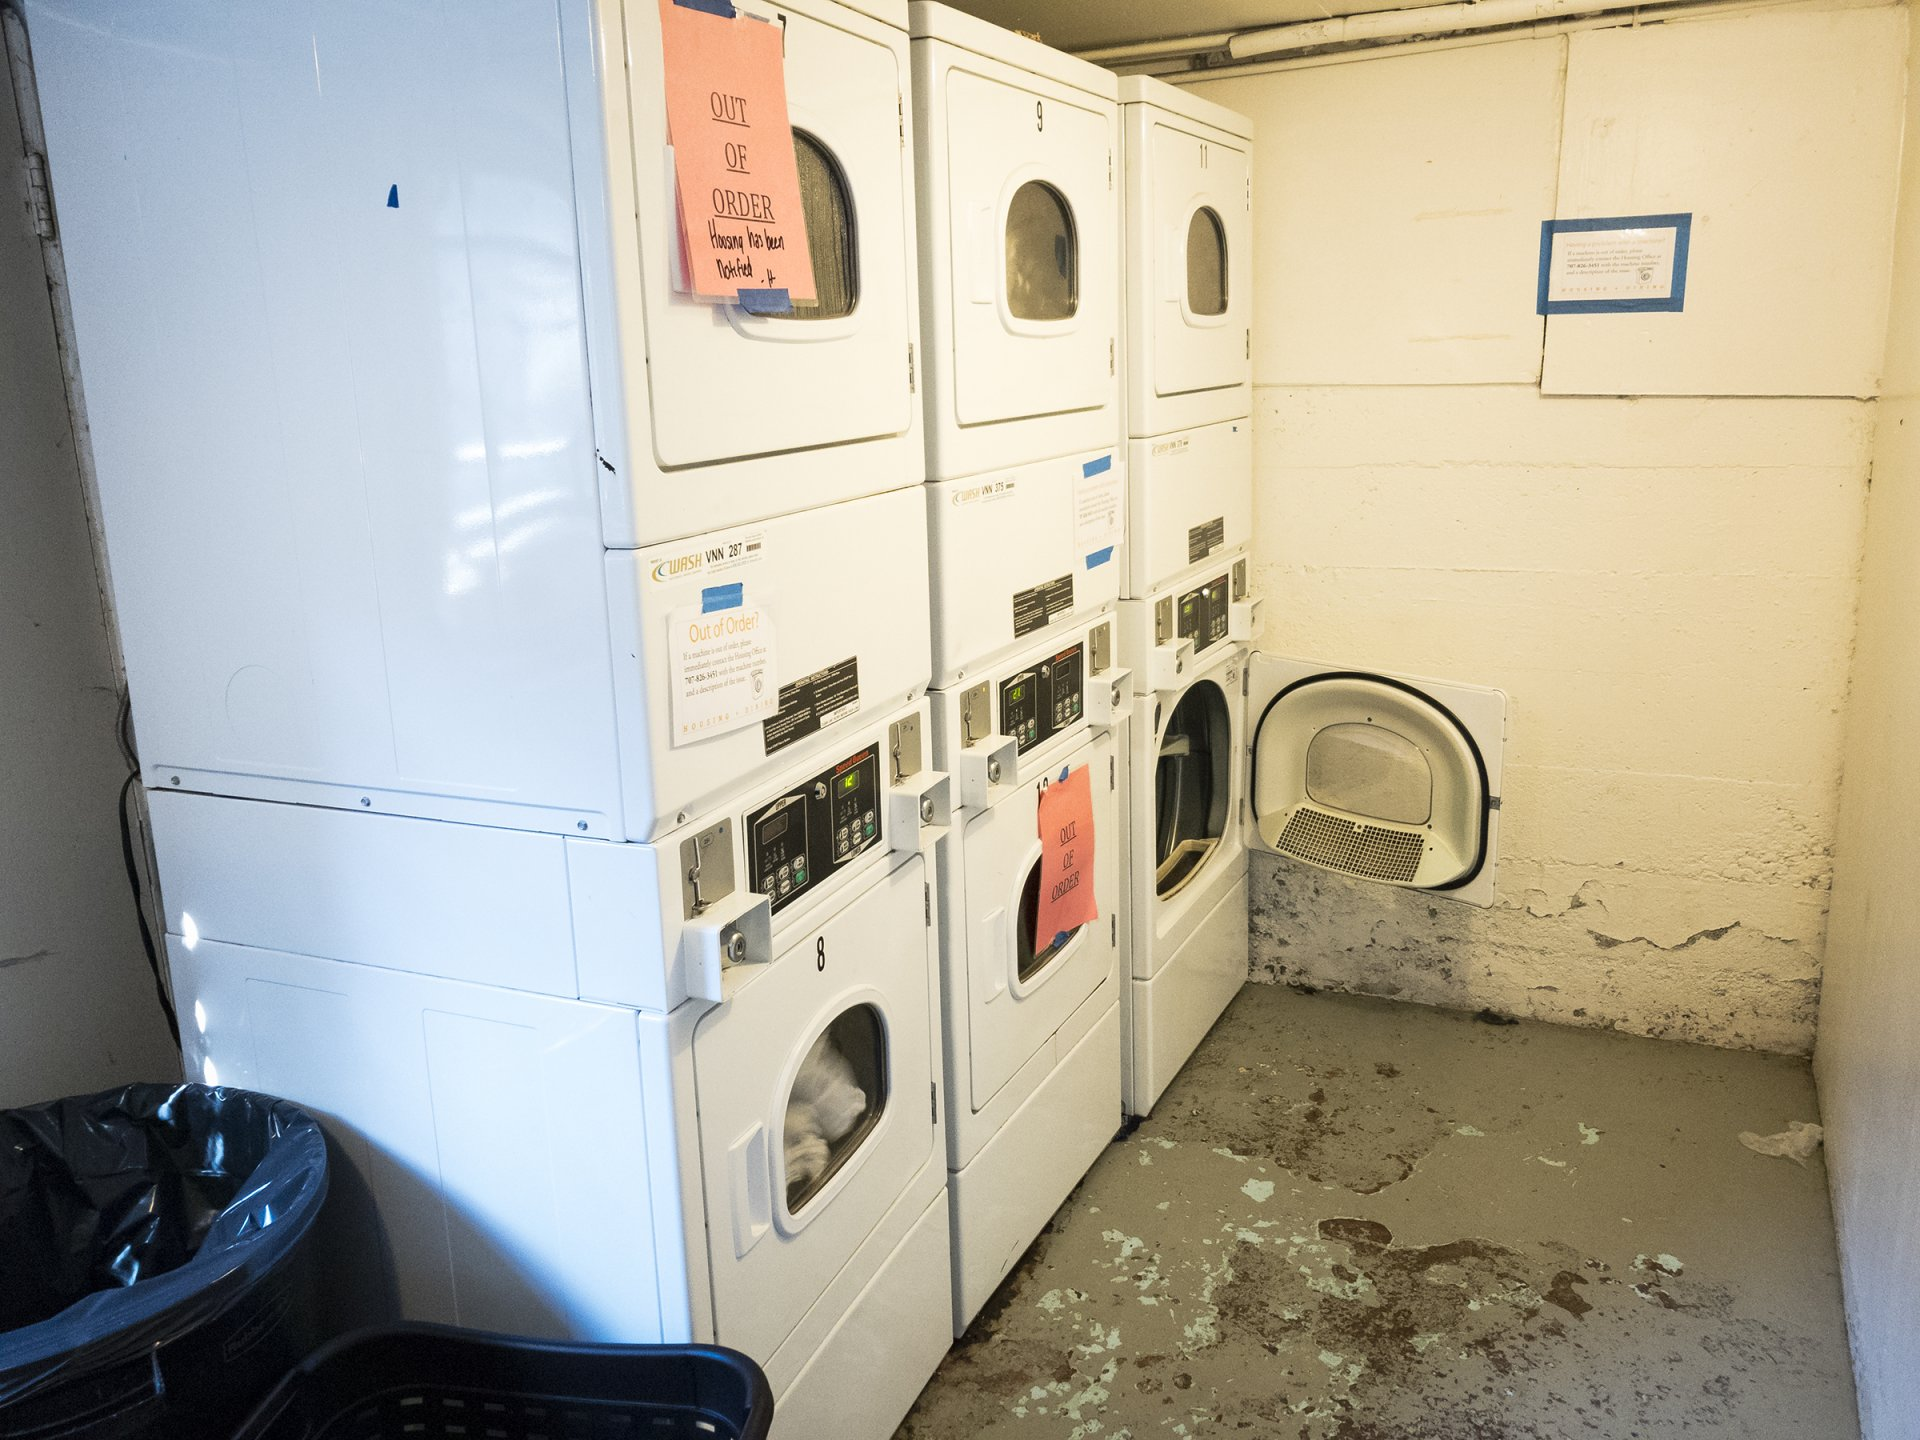 Dryers out of order in the Campus Apartments laundry room, Feb. 2. Photo by Luis Lopez.